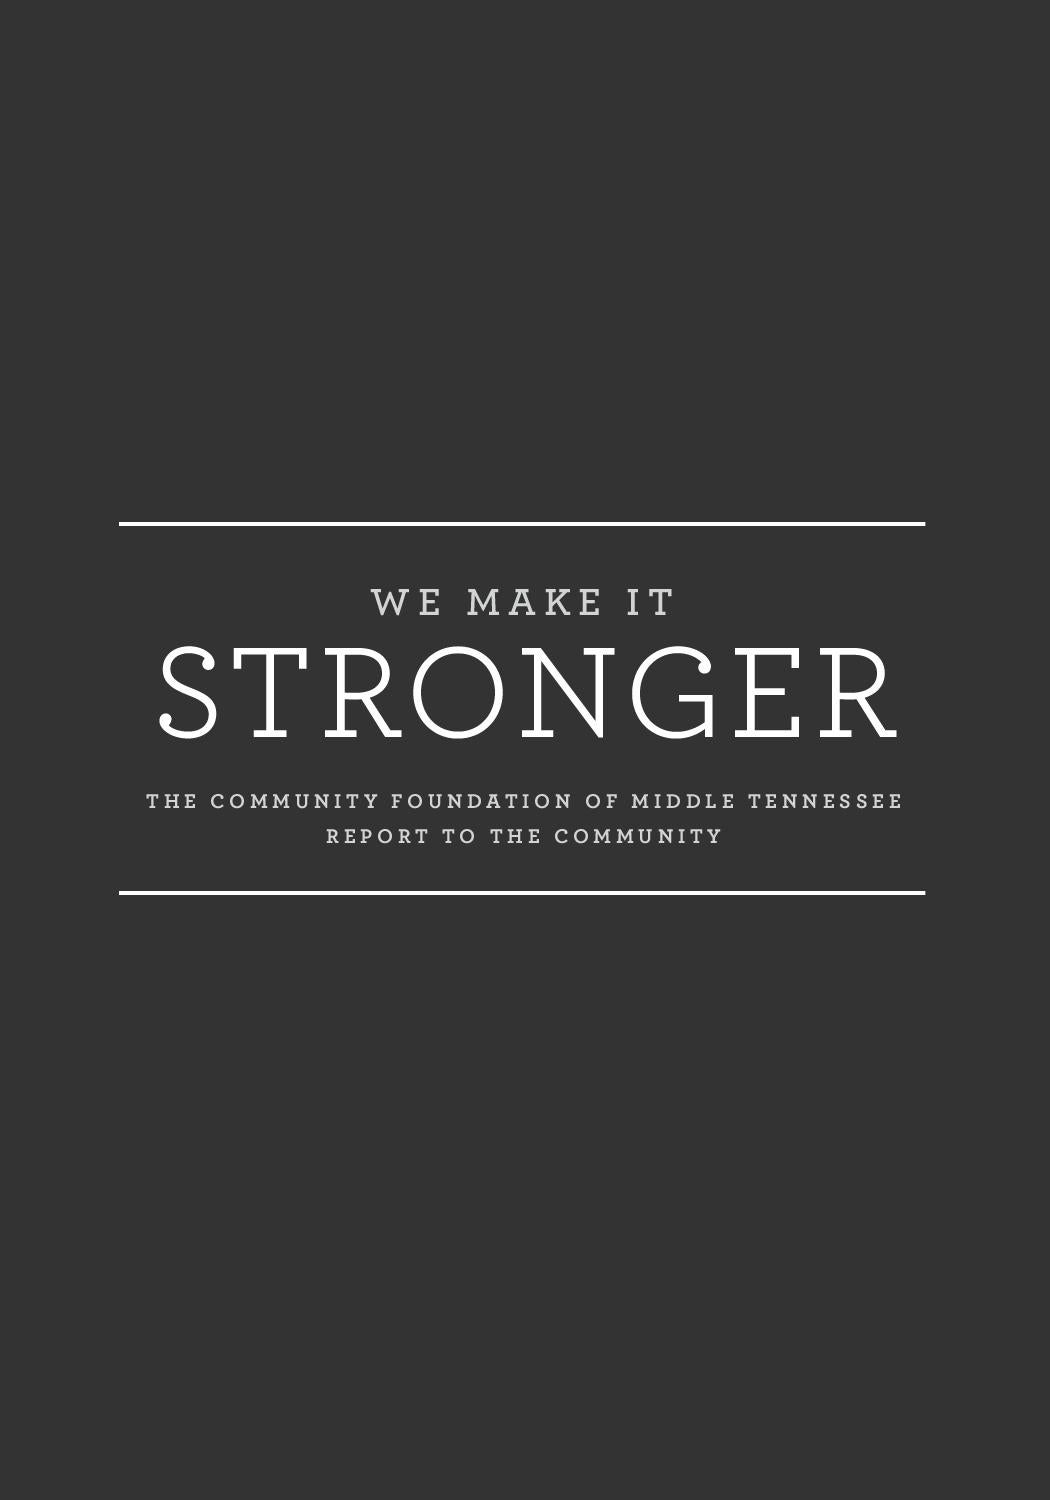 We Make It Stronger  The Community Foundation of Middle Tennessee